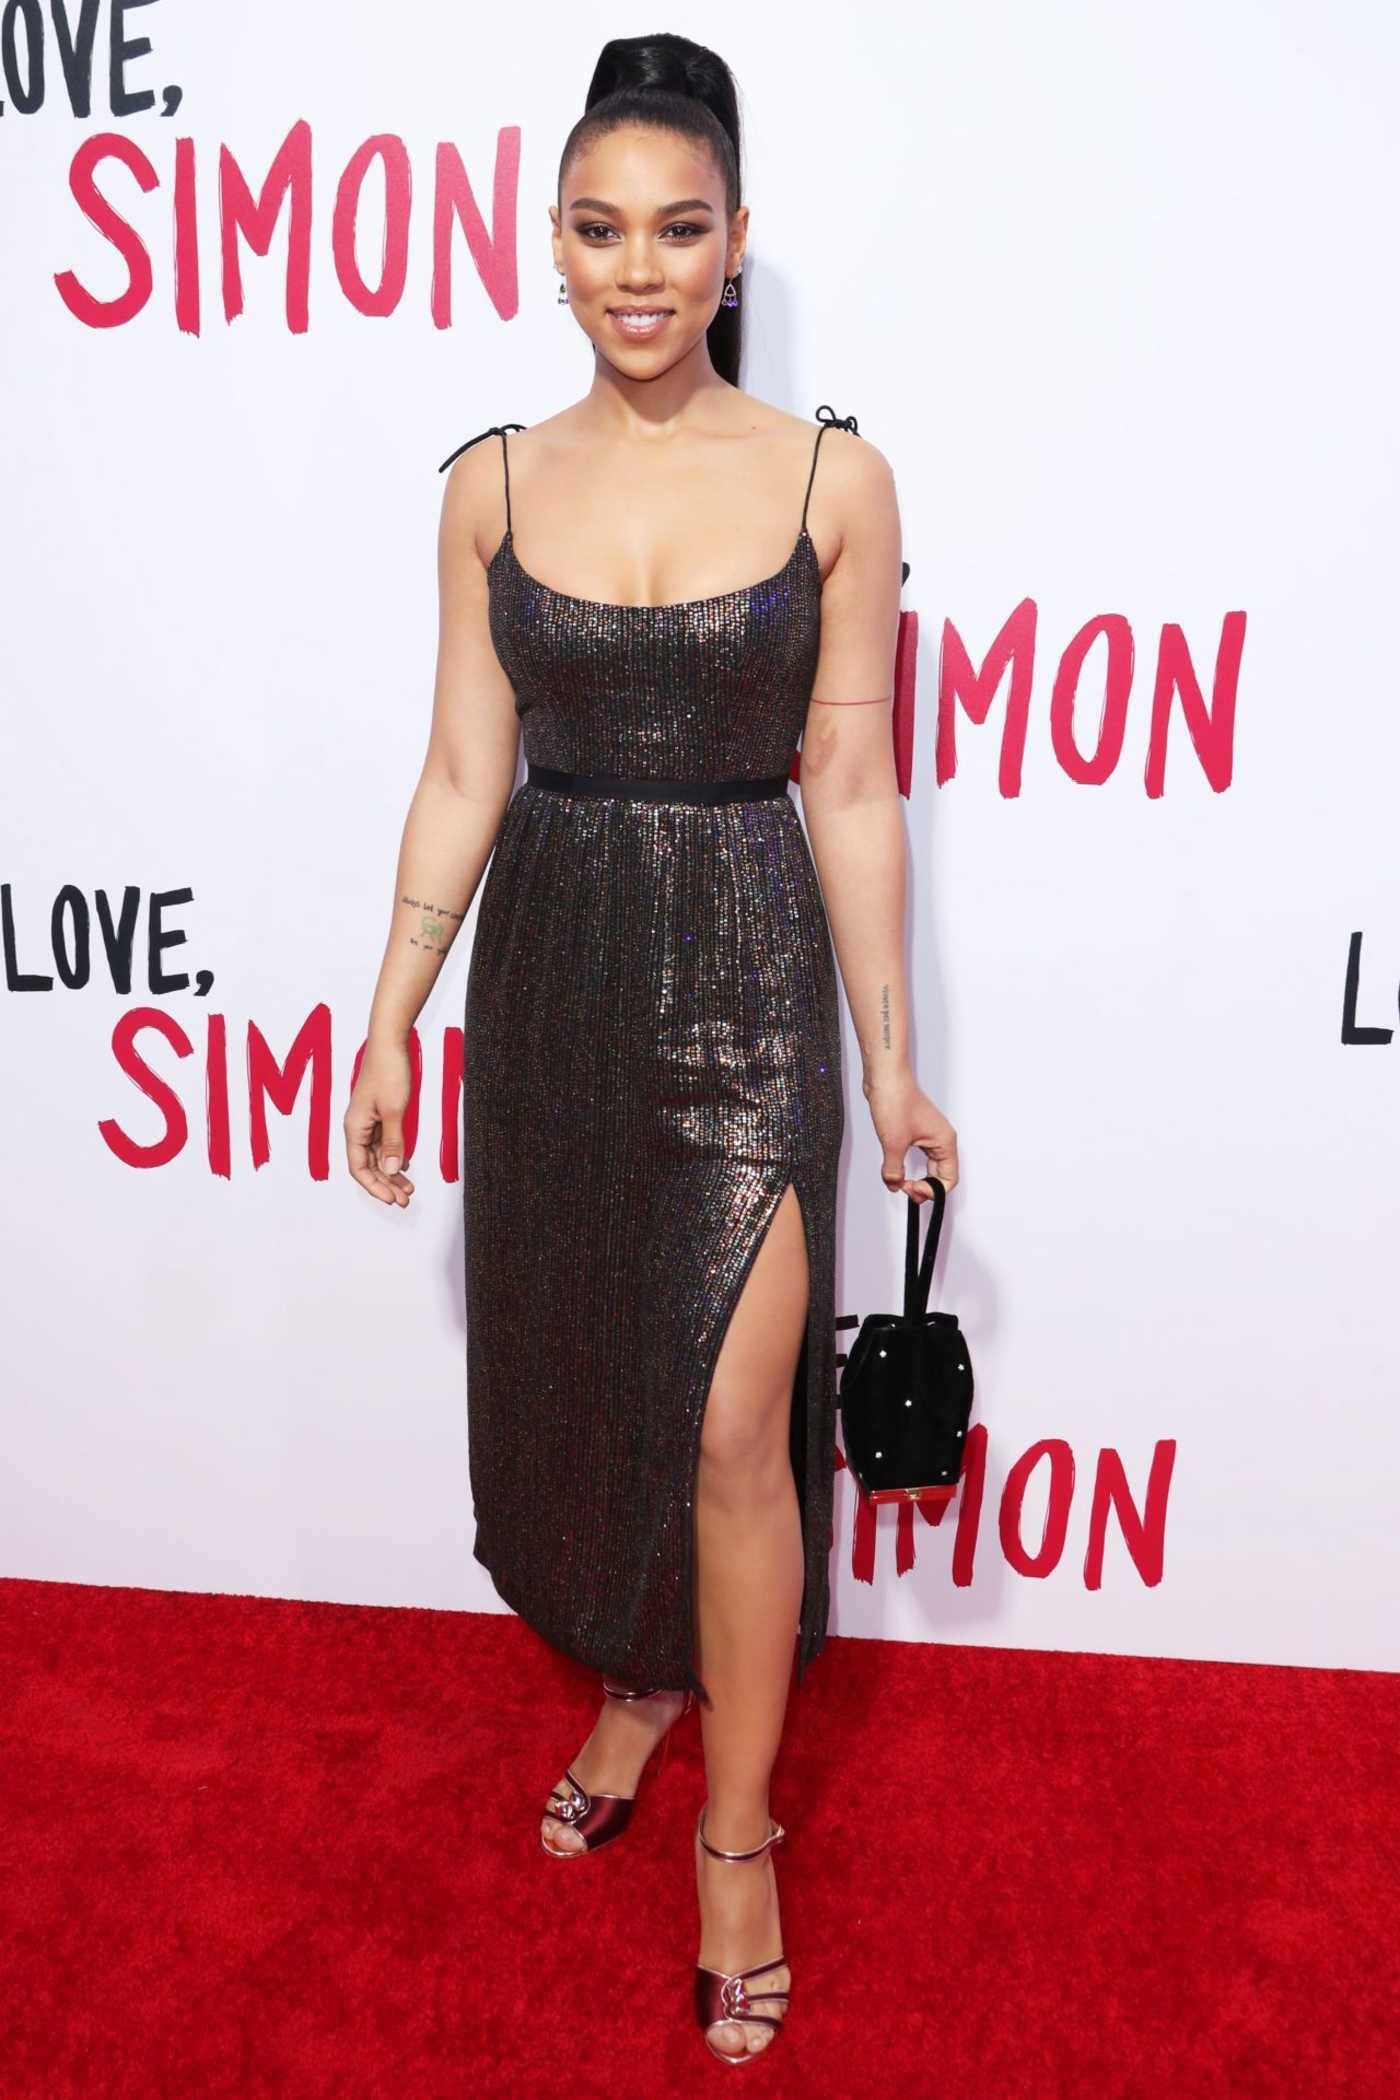 Alexandra Shipp at the Love, Simon Premiere in Los Angeles 03/13/2018